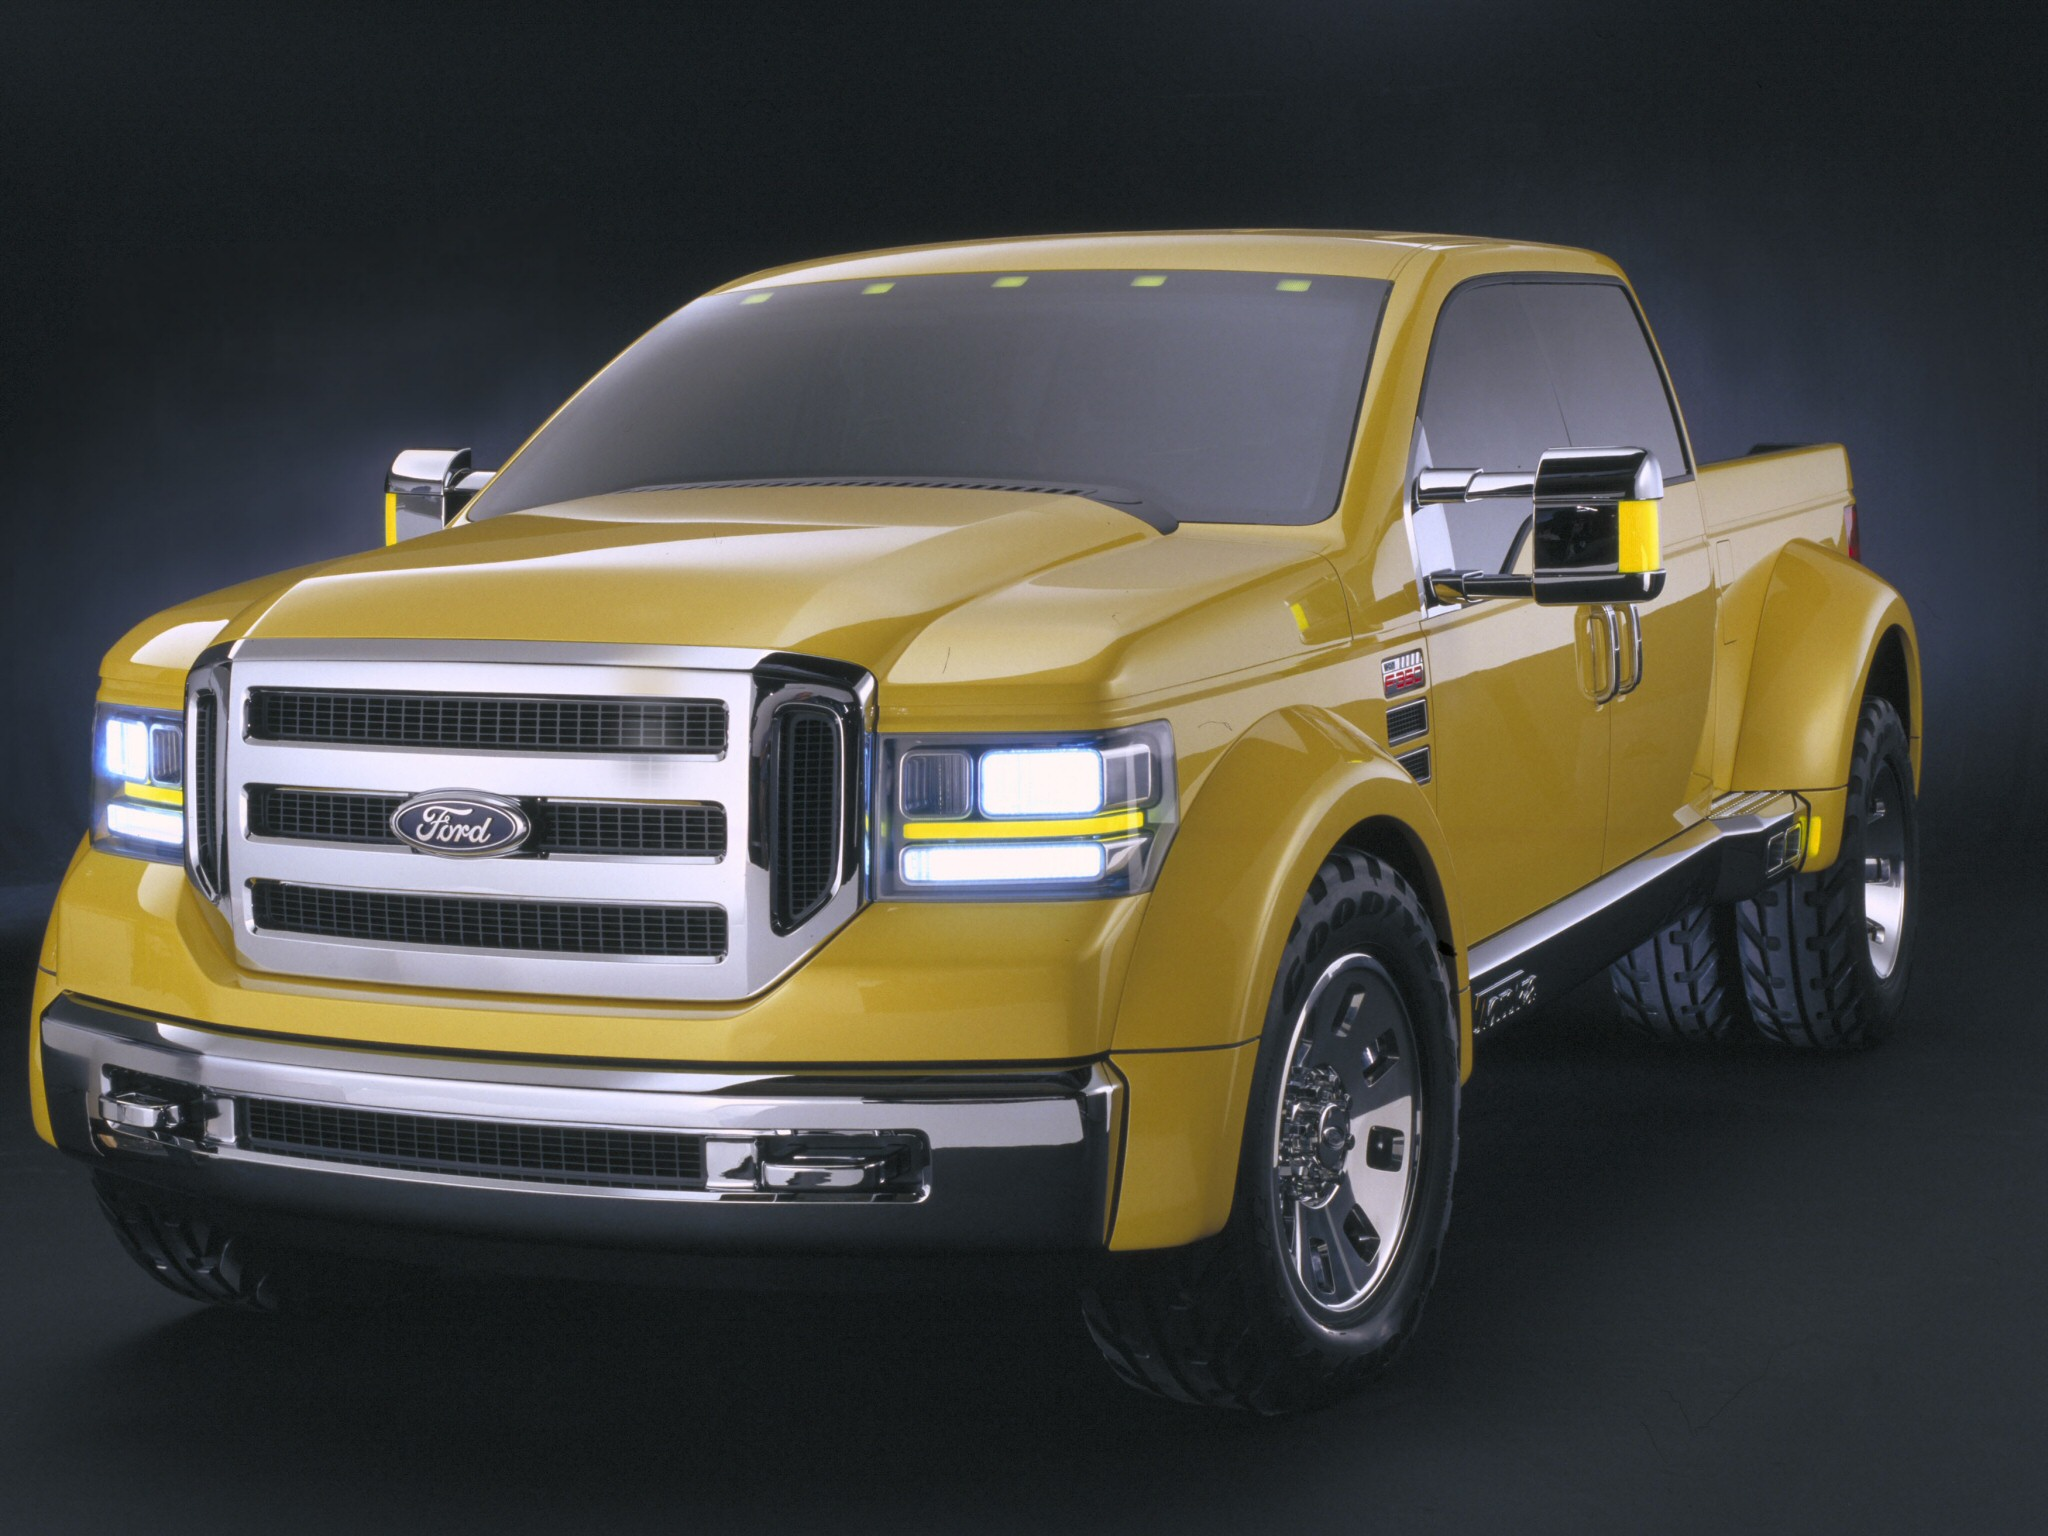 ford f 350 2015 review amazing pictures and images look at the car. Black Bedroom Furniture Sets. Home Design Ideas